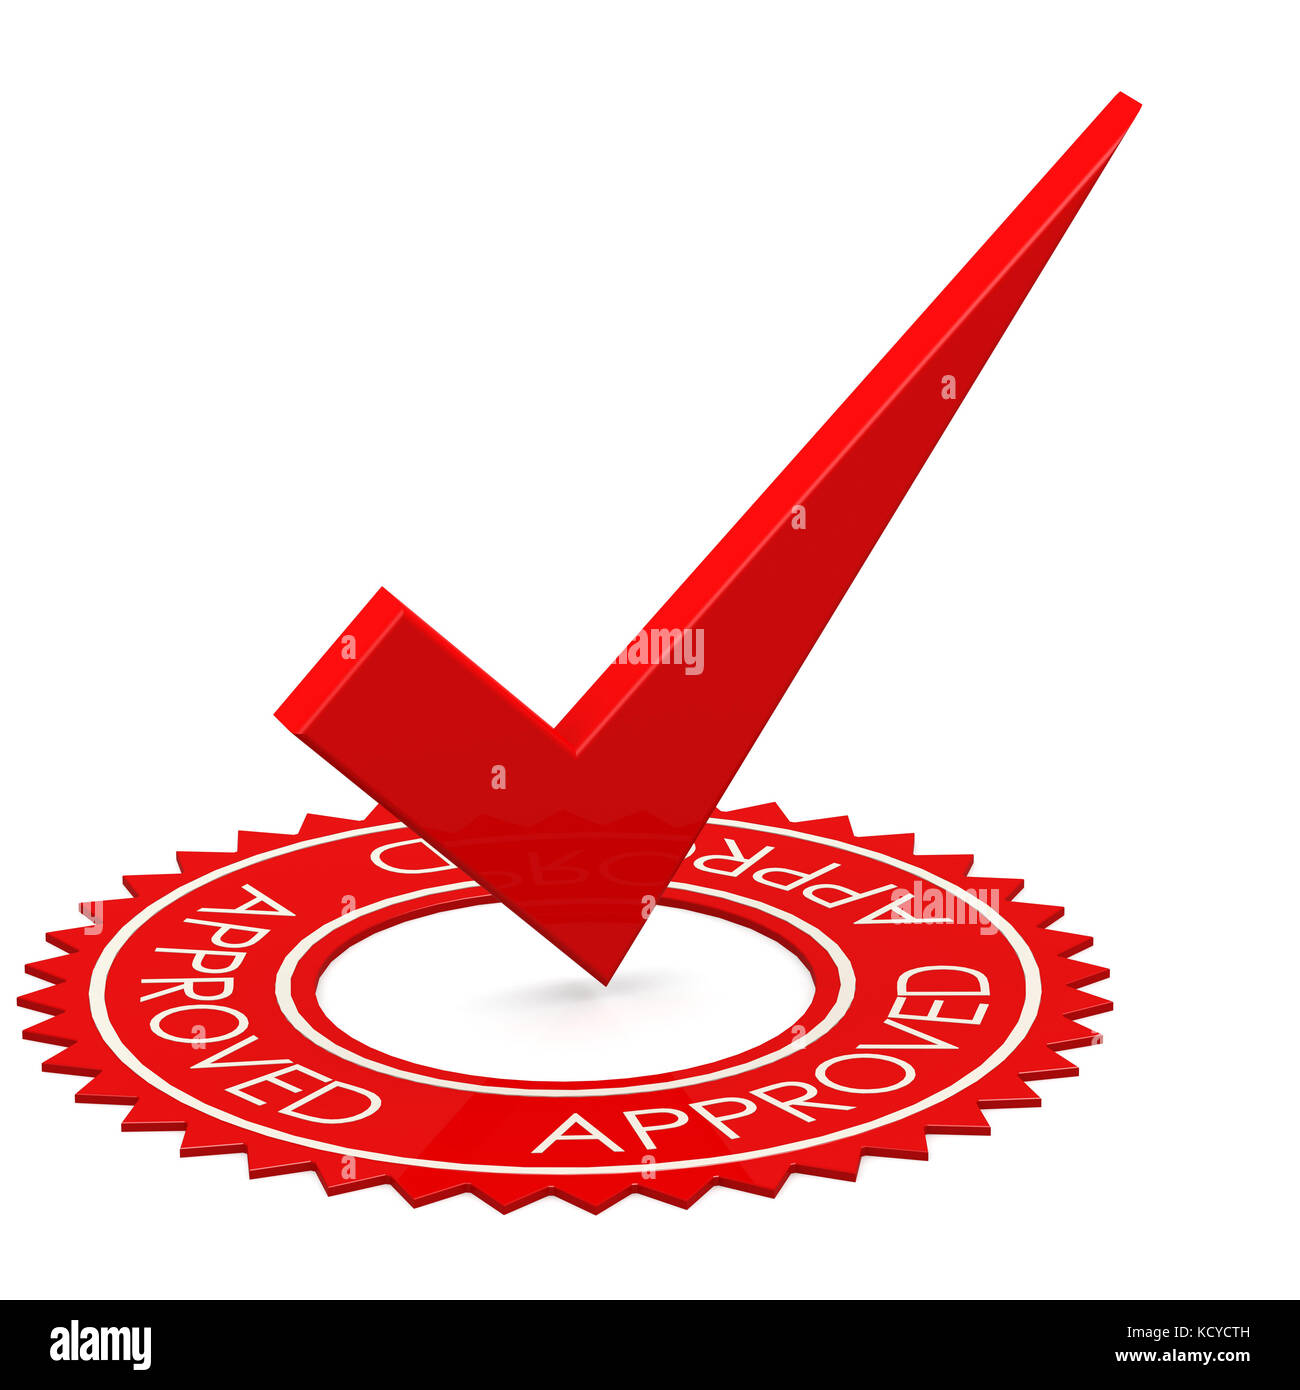 Approved Red Tick In A Circle Image With Hi Res Rendered Artwork